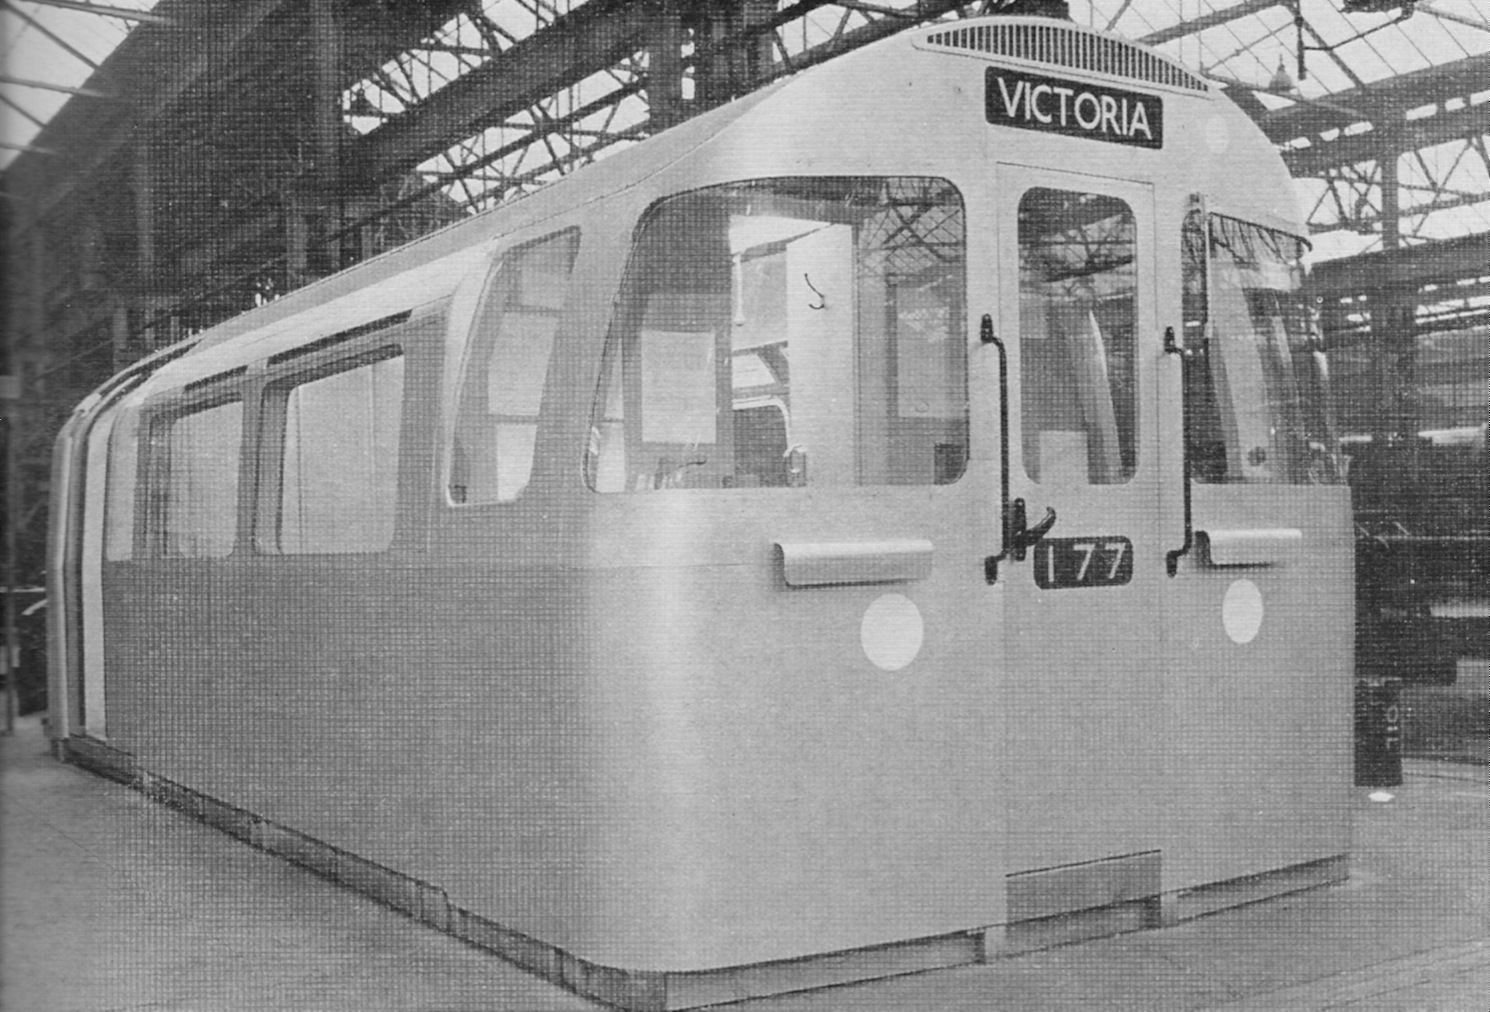 1967+tube+stock+mock+up+2.jpegpjF - The Victoria Line's really big 50th birthday!